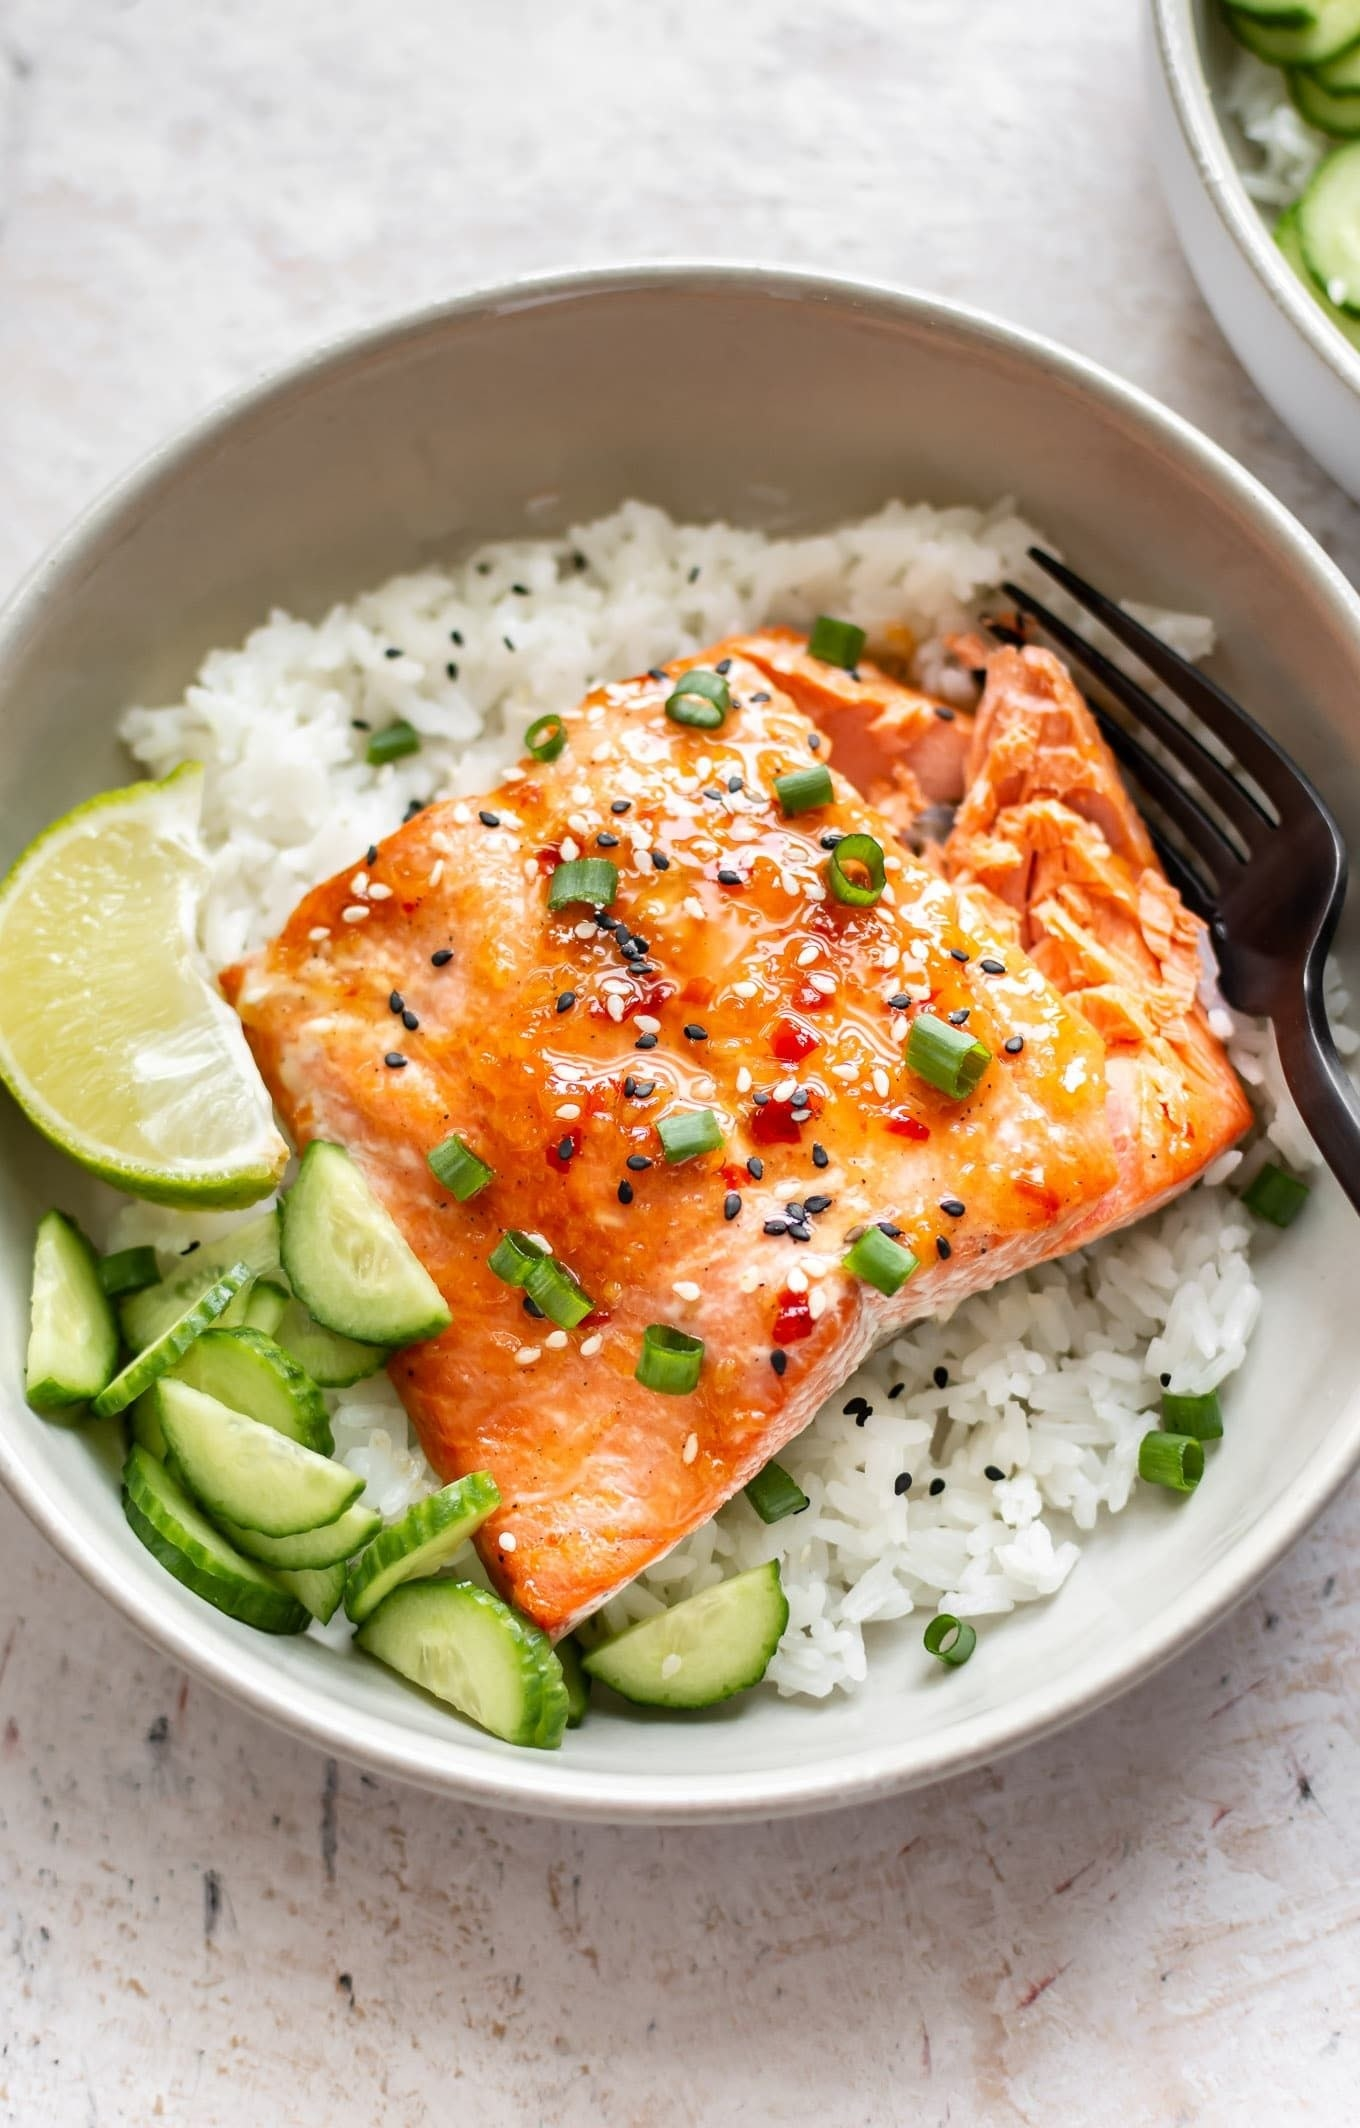 Chili salmon over rice with cucumbers.